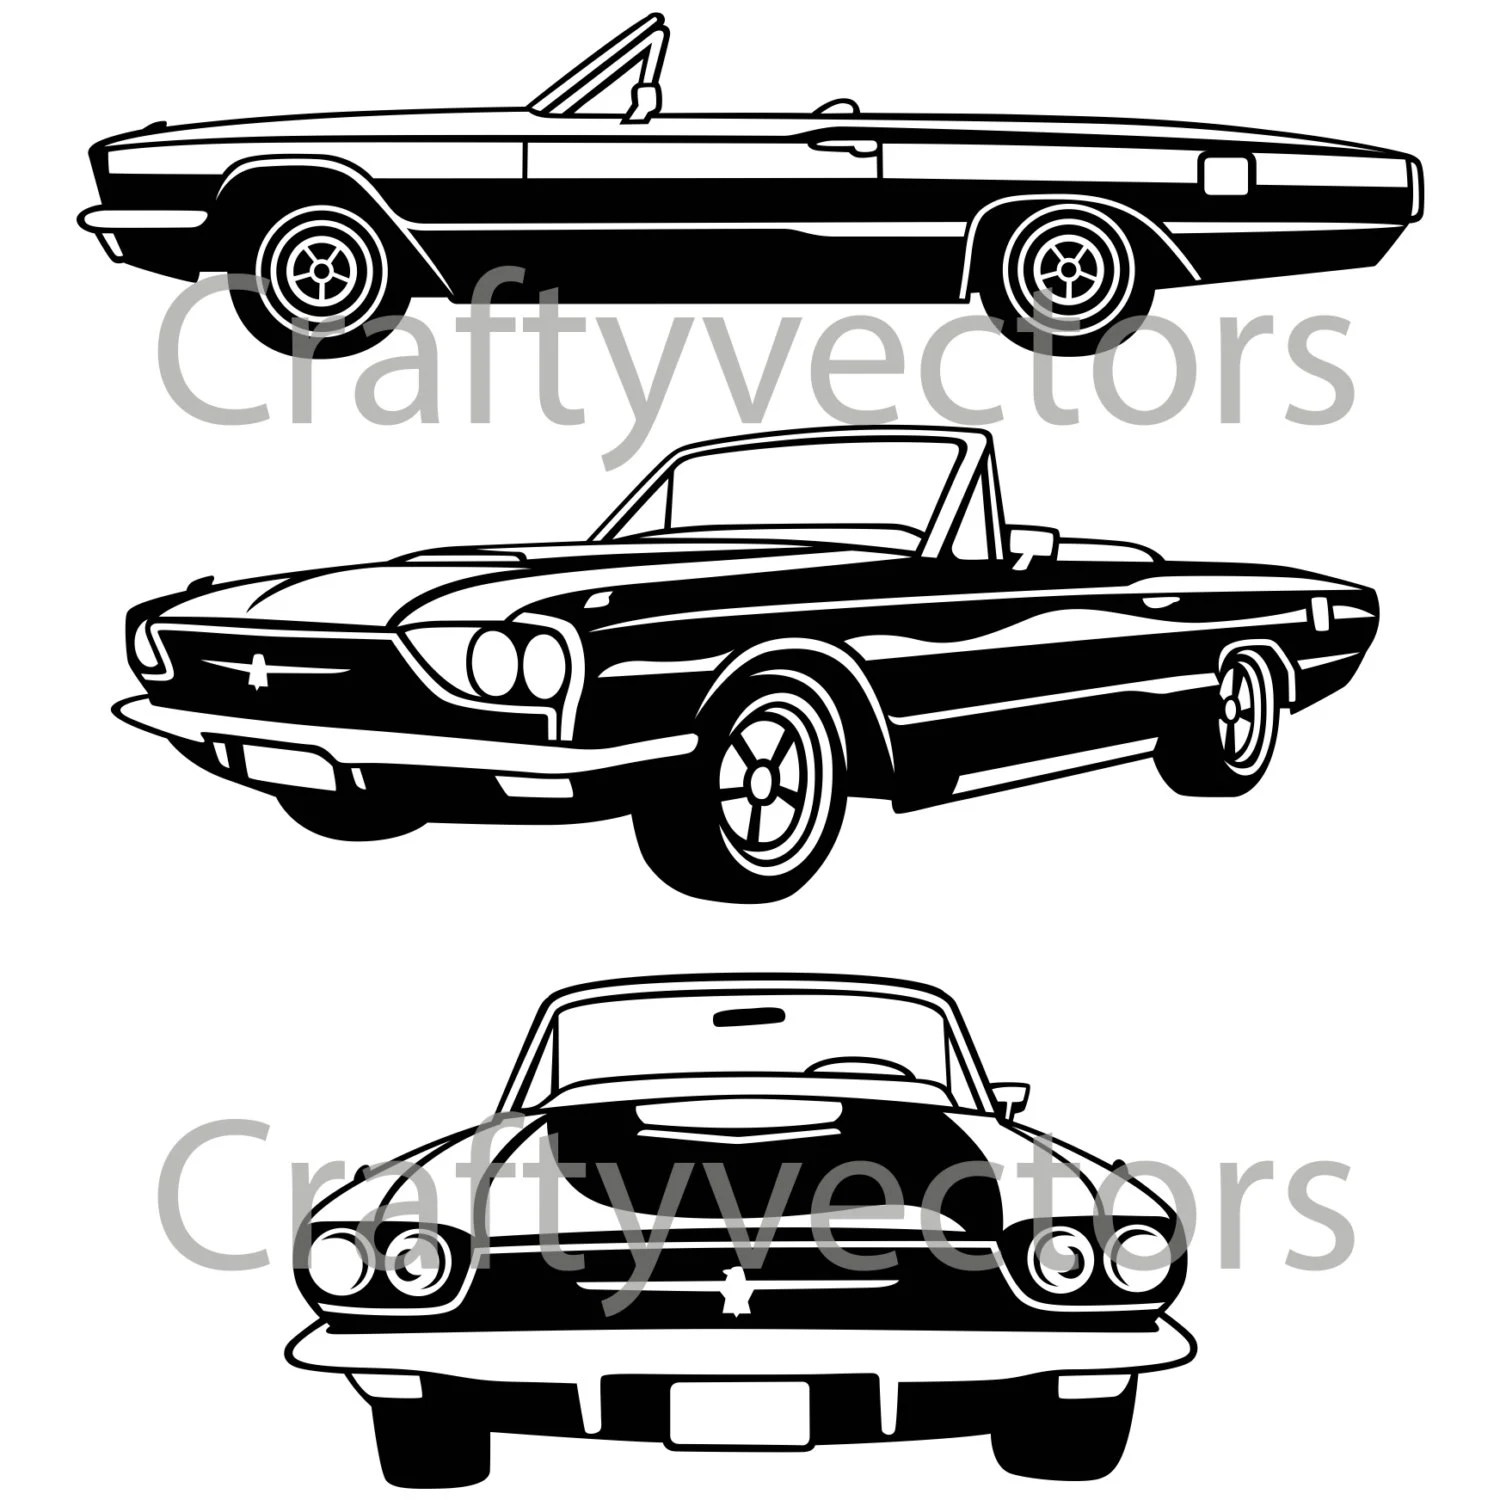 1966 Ford Thunderbird Car vector file